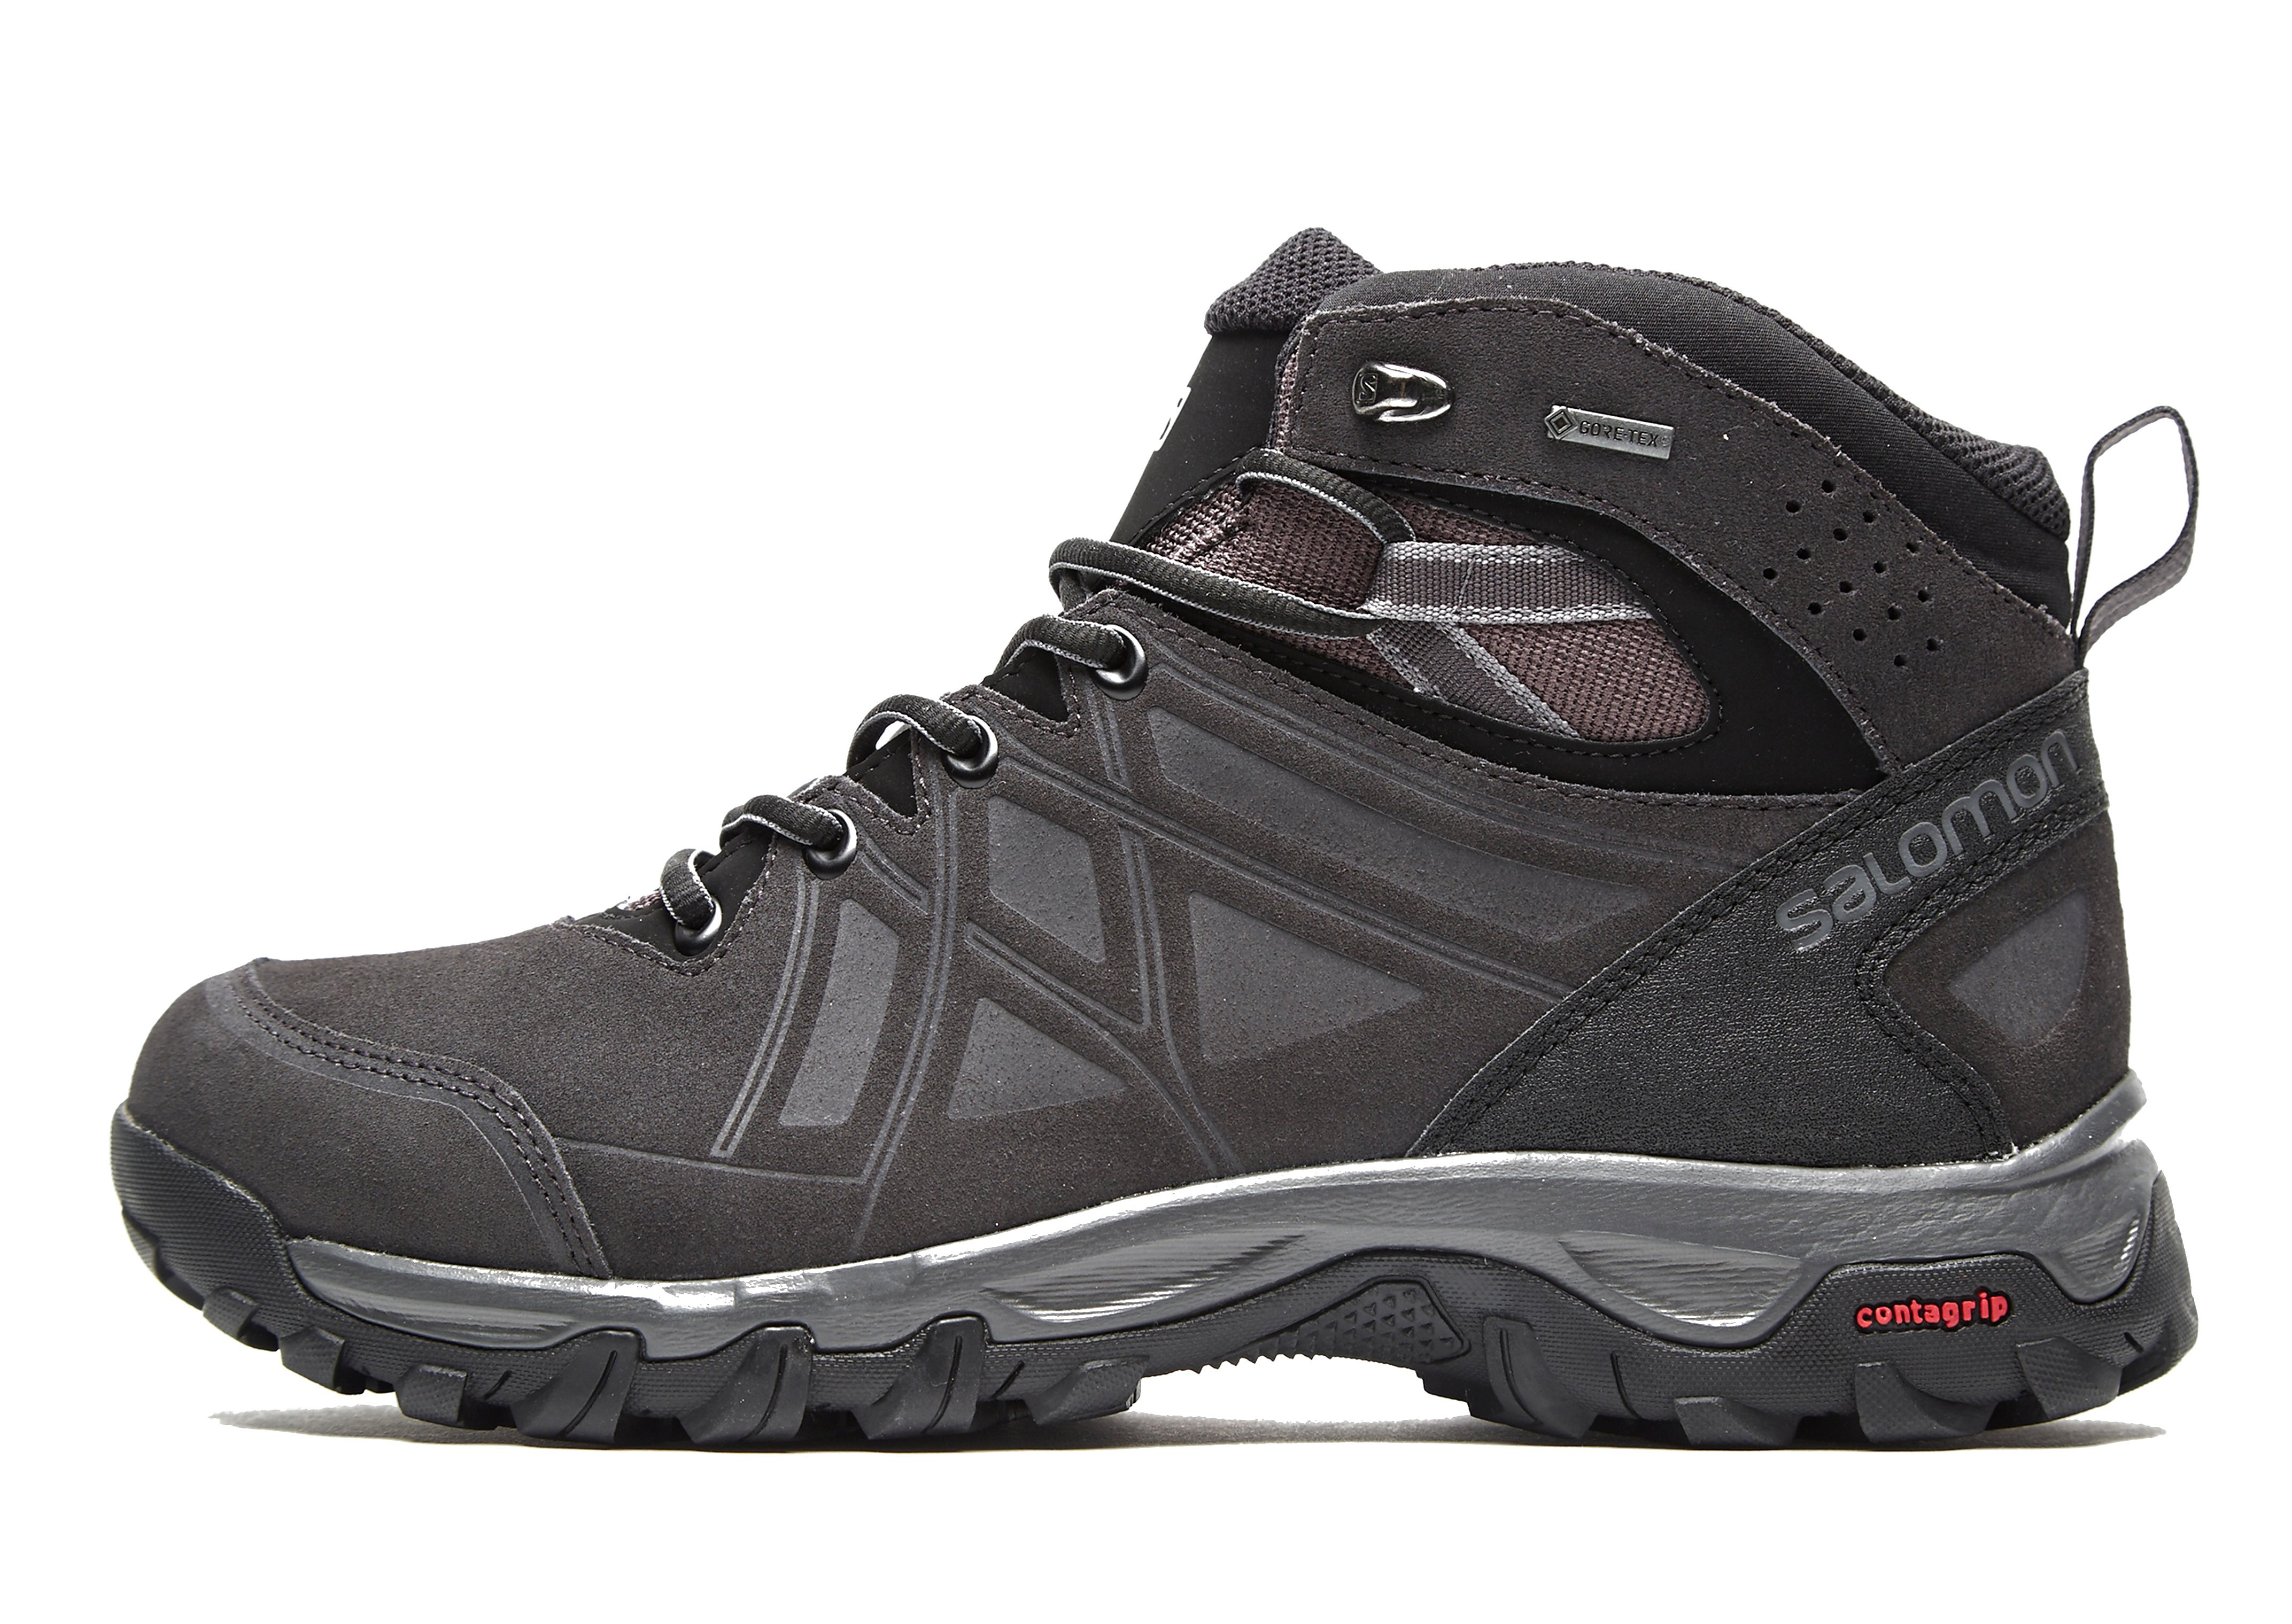 Salomon Evasion 2 Mid GTX Hiking Boots